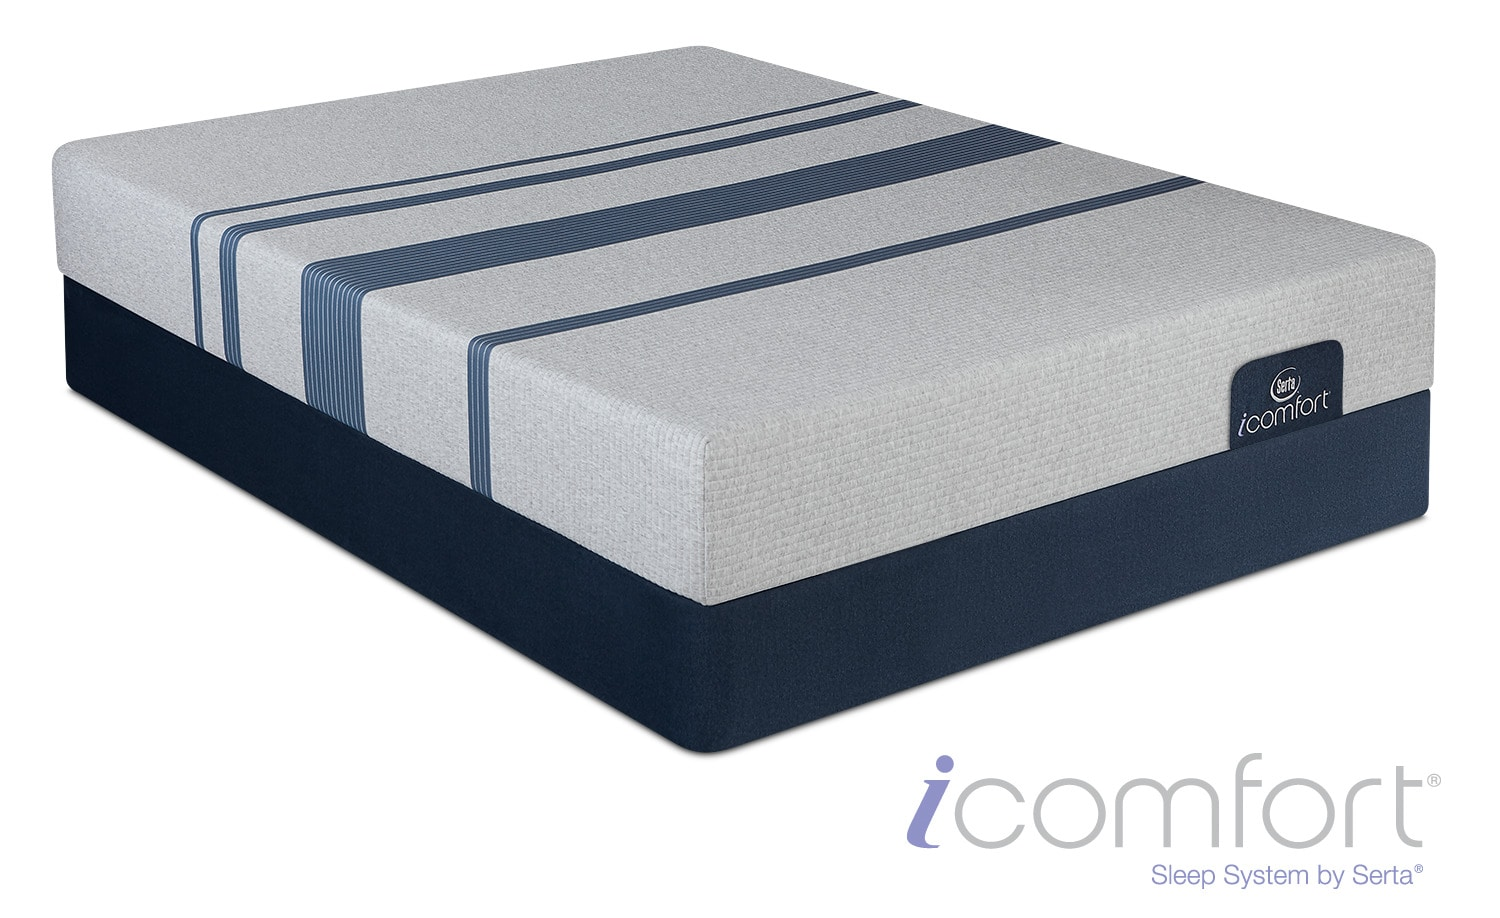 The Blue 100 Cushion Firm Mattress Collection